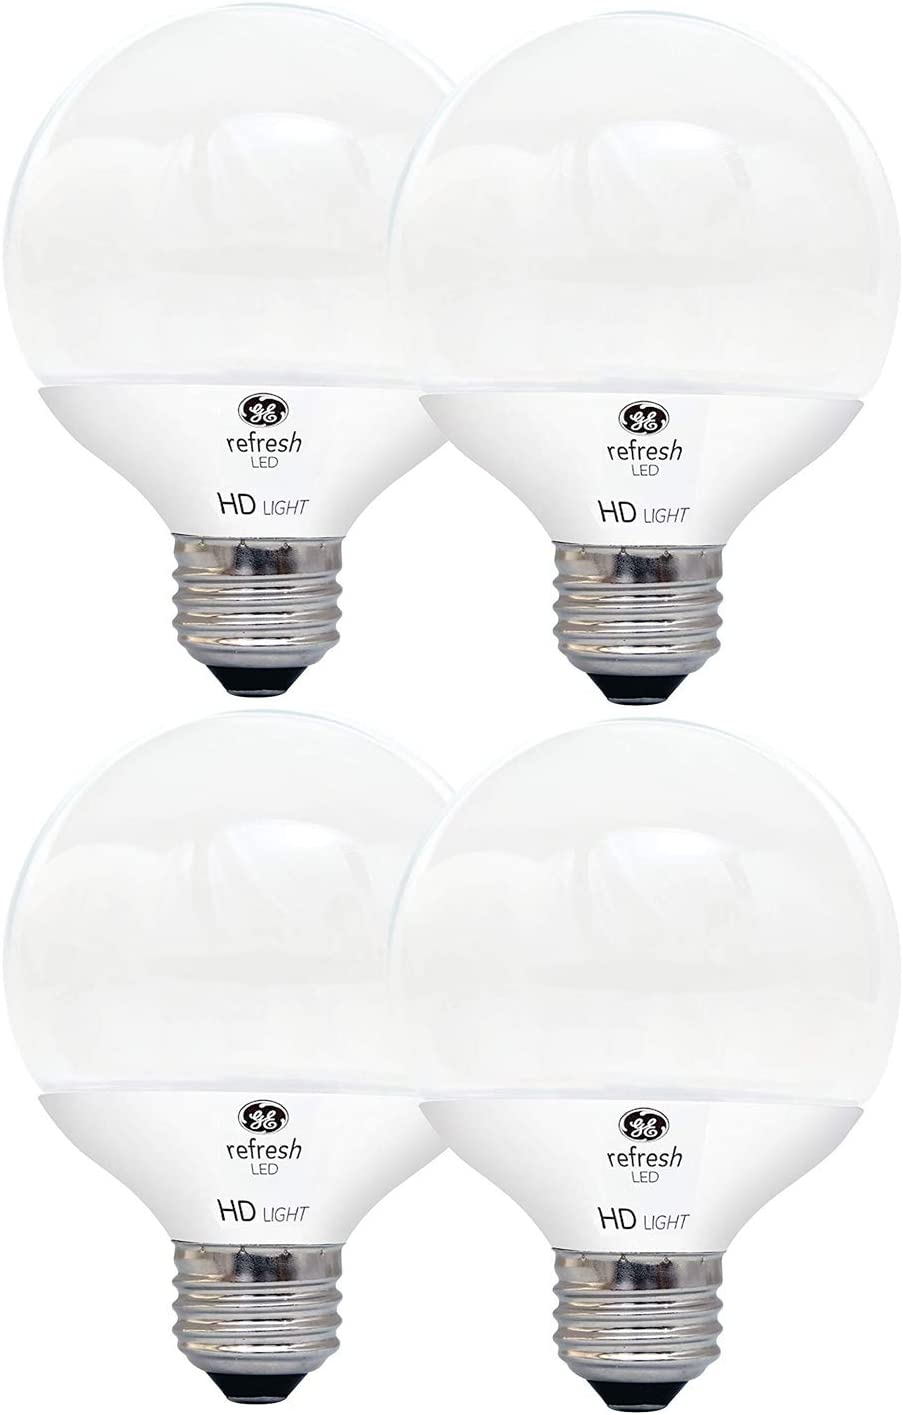 GE Lighting LED Relax HD 6 (60-watt Replacement), 500-Lumen G25 Light Bulb with Medium Base, Soft, Frosted White, 4 Bulbs